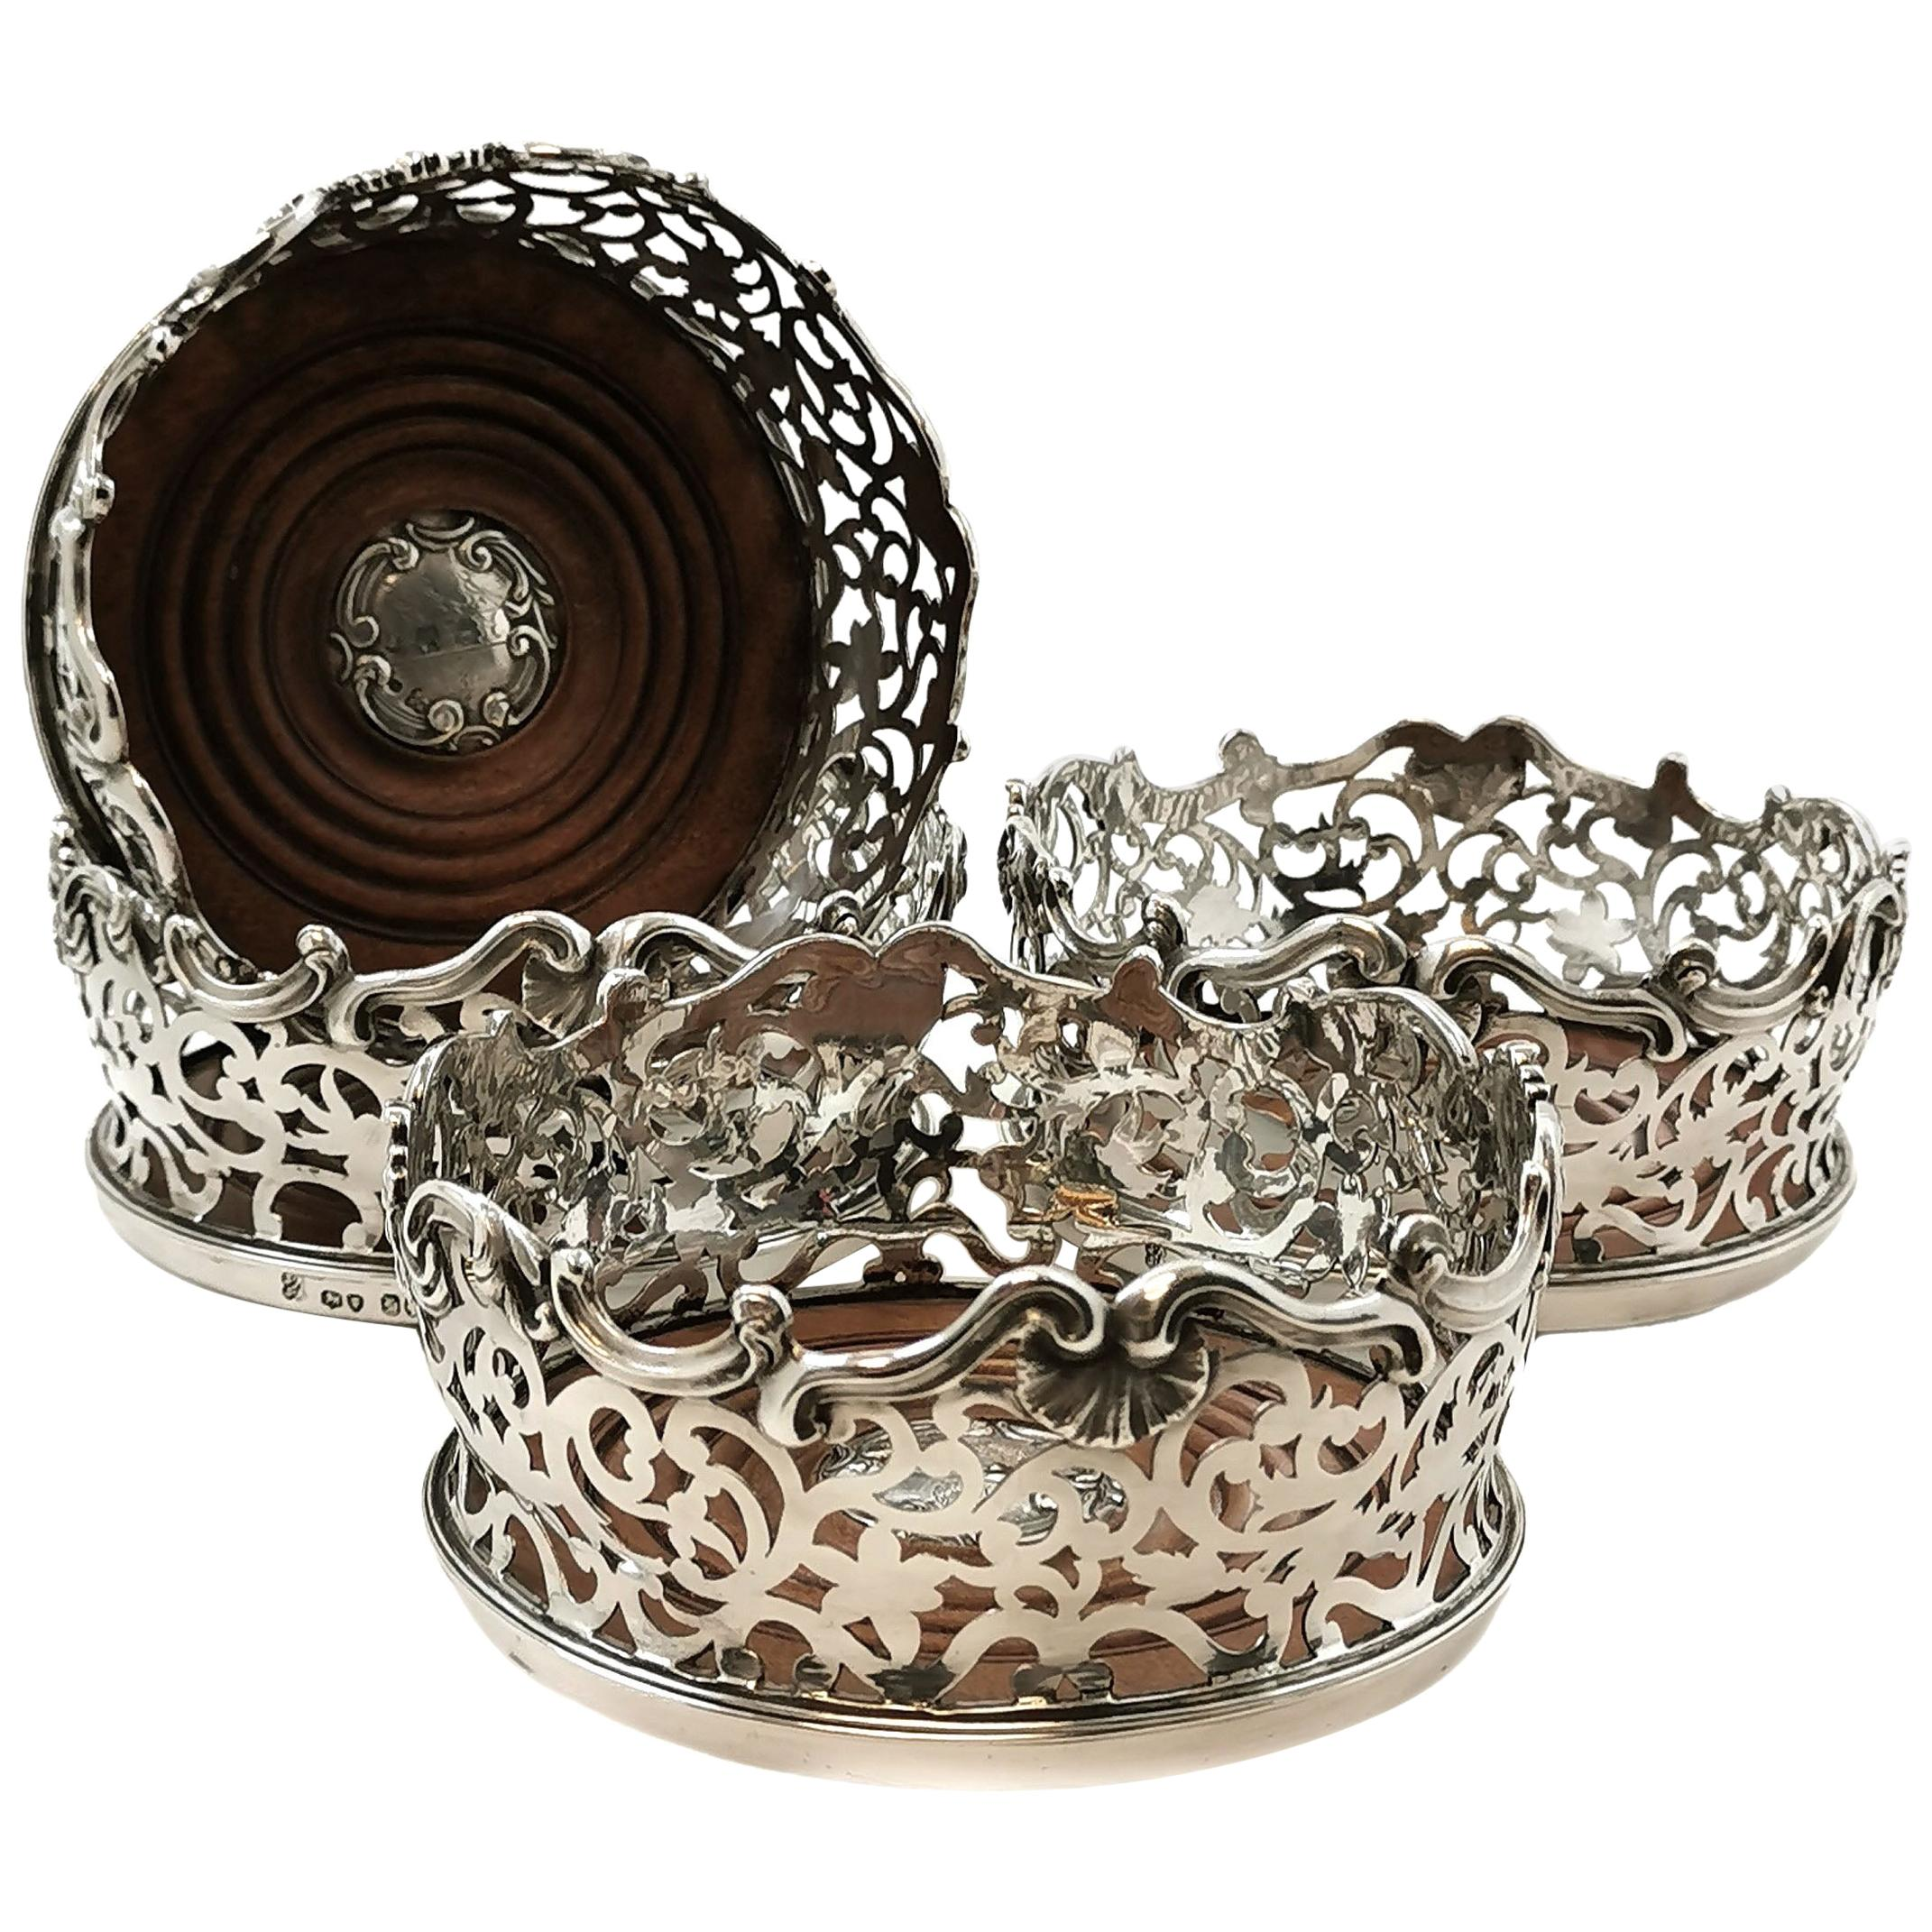 Set of Four Antique Victorian Sterling Silver Wine Bottle Coasters, 1843